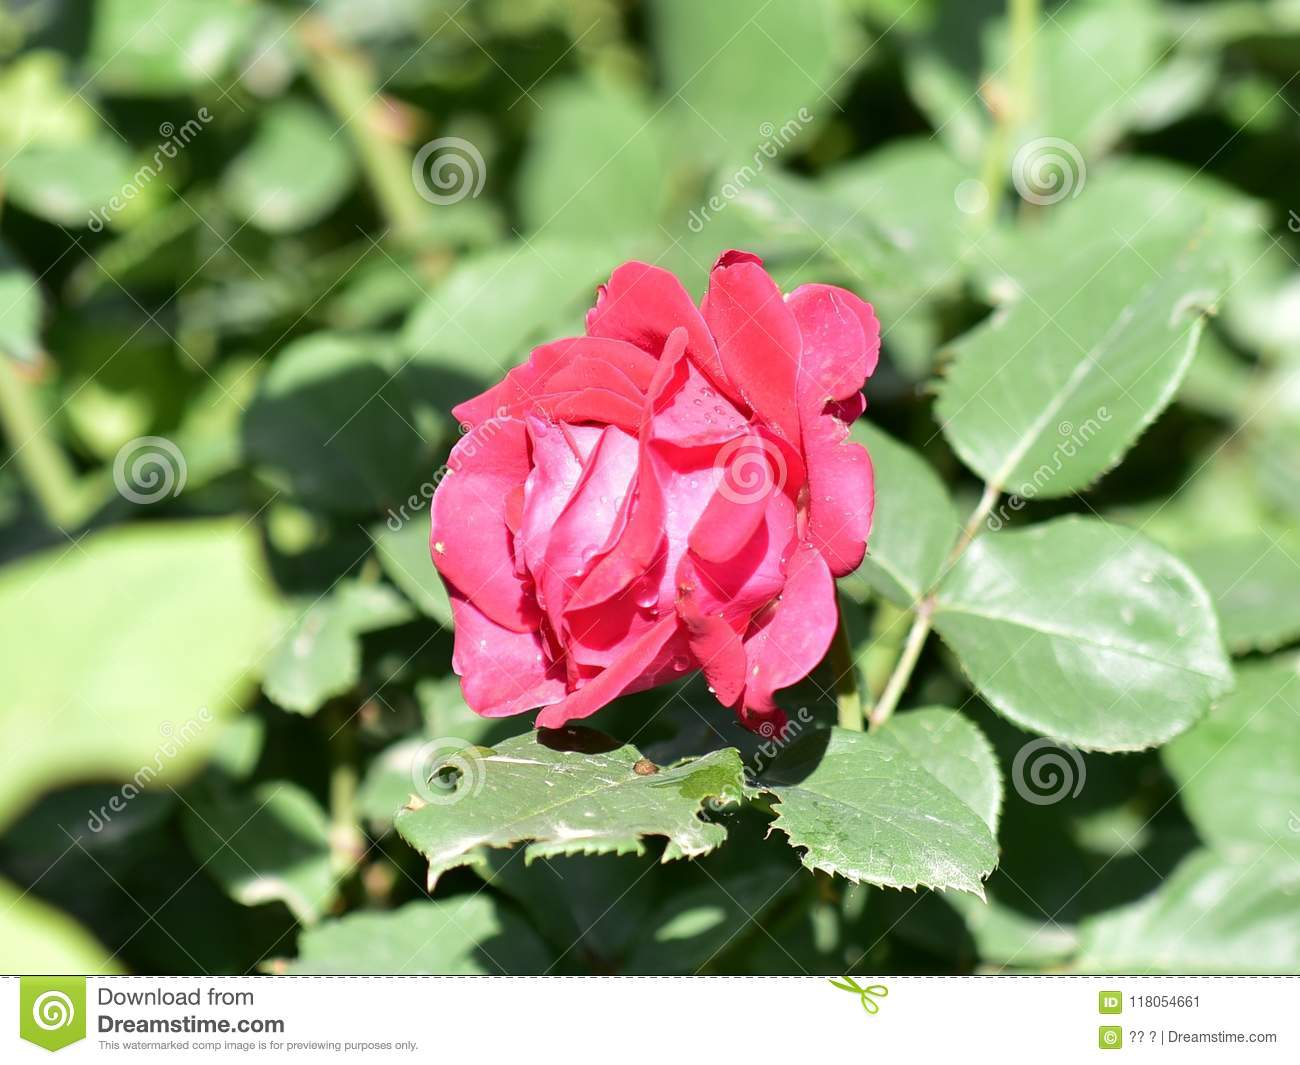 Queen of flowers rose flower stock image image of white evergreen semi evergreen low shrubs four seasons flowering usually red or pink even white mightylinksfo